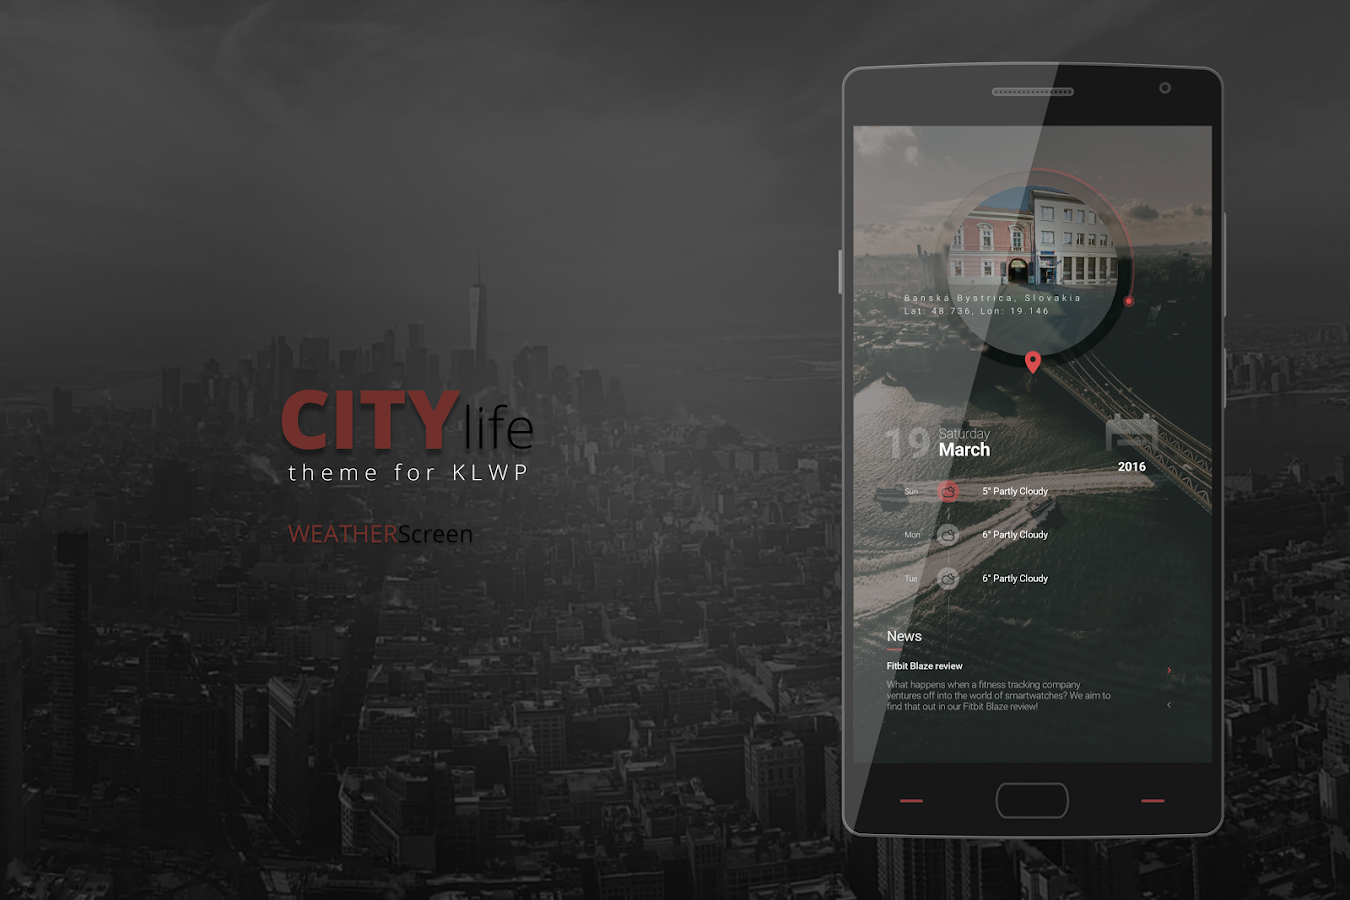 City Life Theme for KLWP Screenshot 1